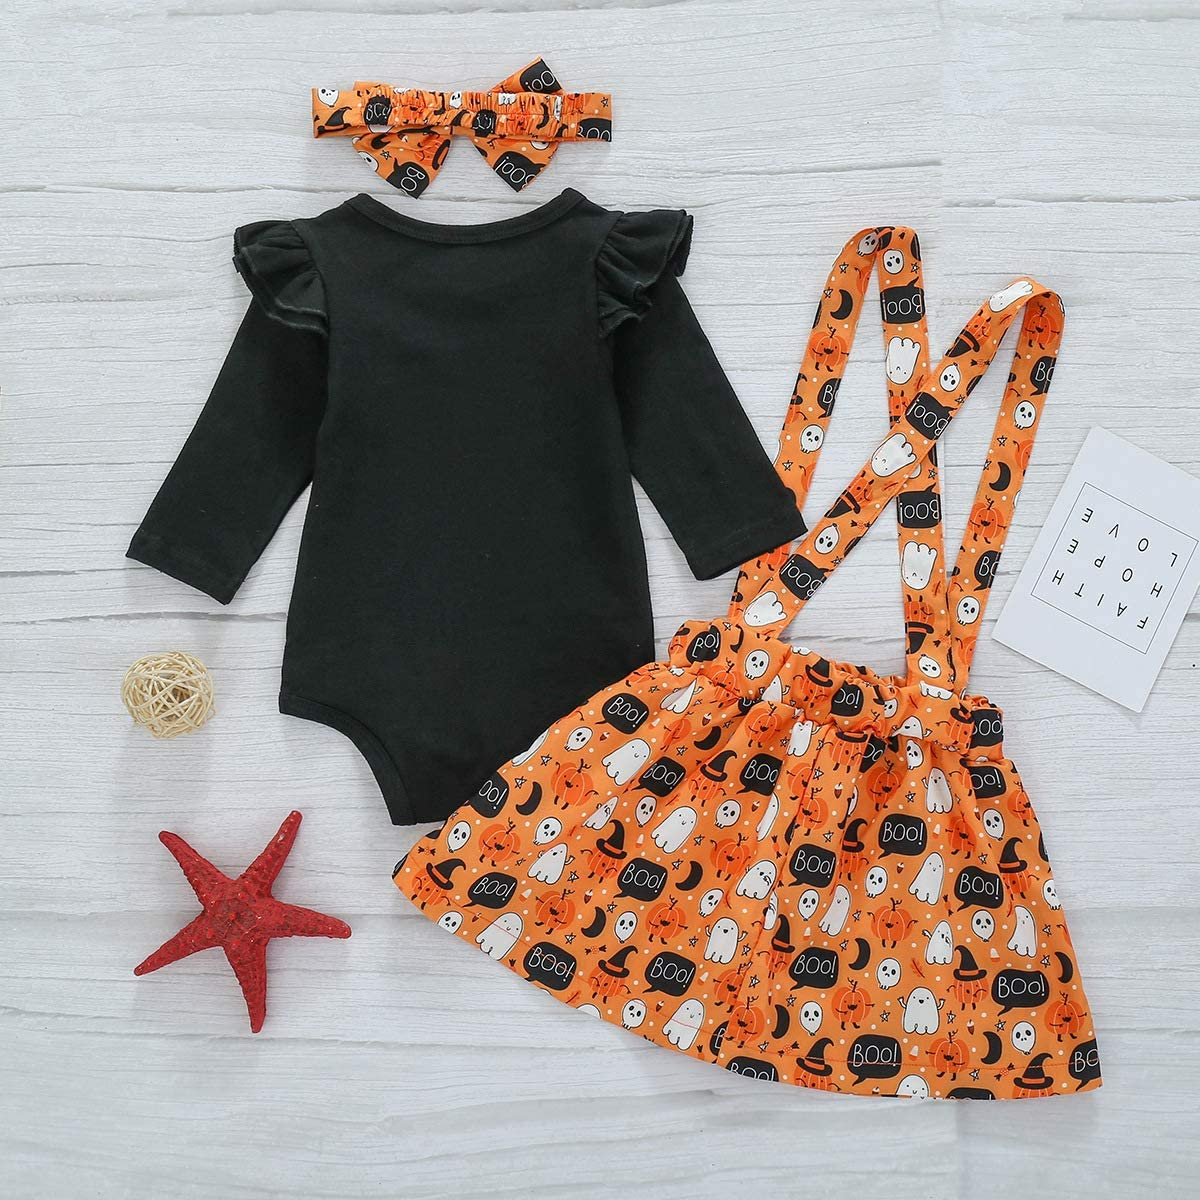 Verve Jelly Newborn Baby Girl My 1st Halloween Clothes Sets Pumpkin Print Long Sleeve Romper+Smile Suspender Skirt+Headband